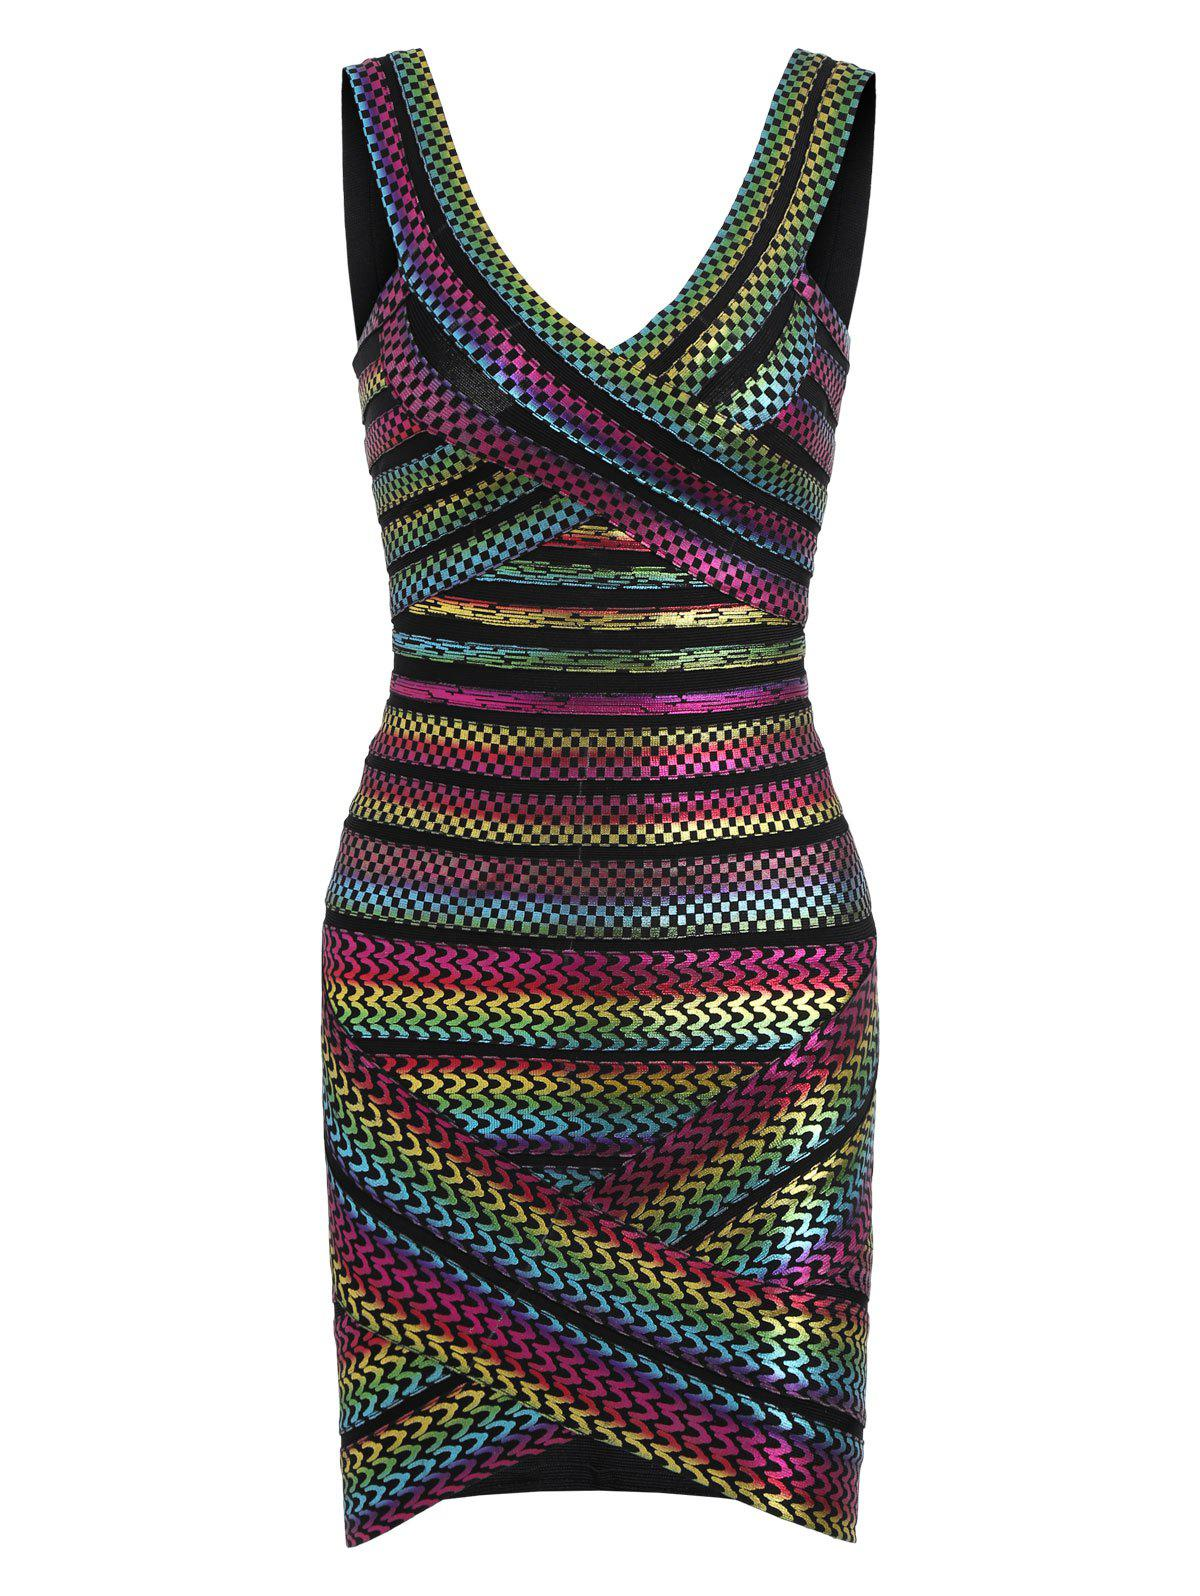 Rainbow Bronzing Bodycon Bandage Dress - COLORMIX M